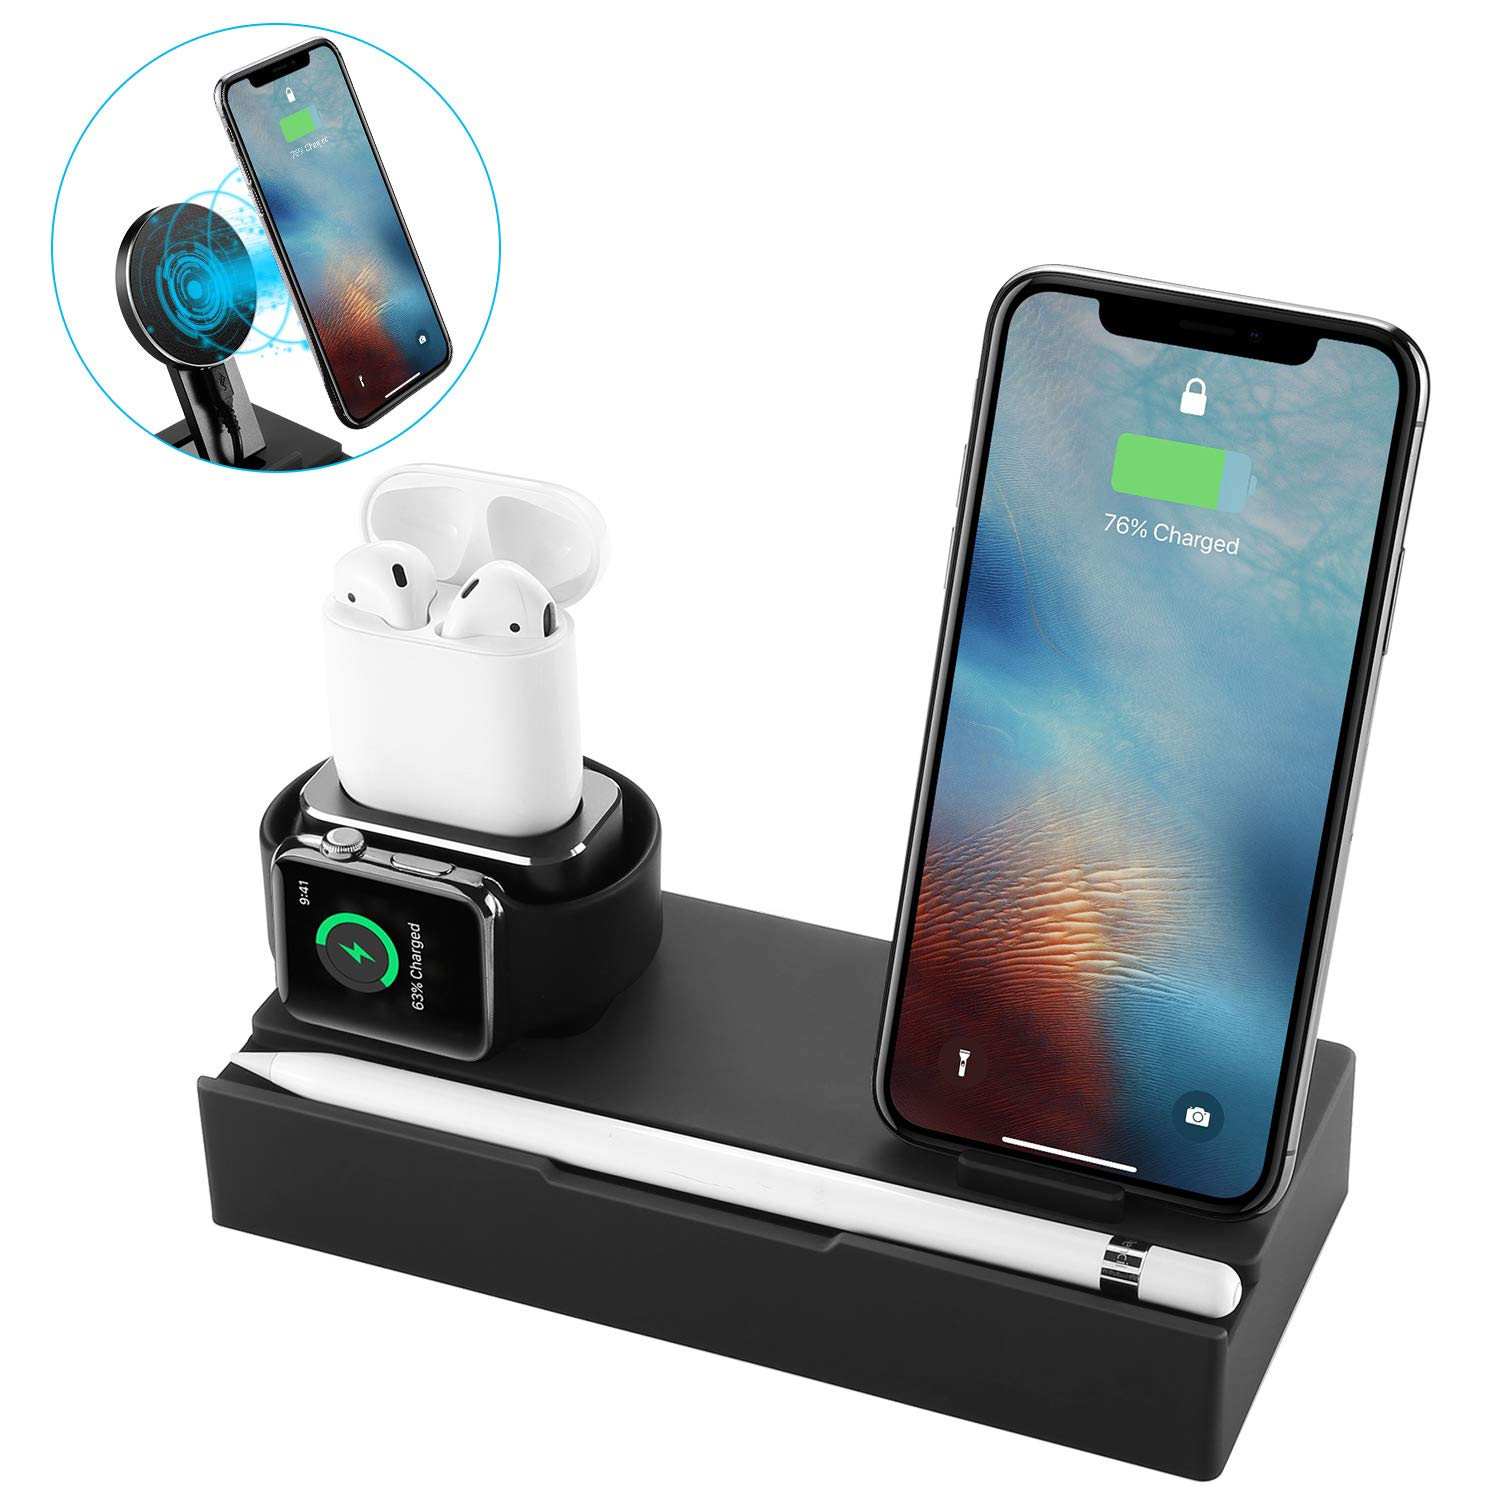 NEXGADGET 8 in 1 Charging Station Compatible Apple Watch AirPods,Detachable  Wireless Charger Compatible for iPhone Xs Max/XS/XR/X/8/8 Plus All  Qi-Enabled ...